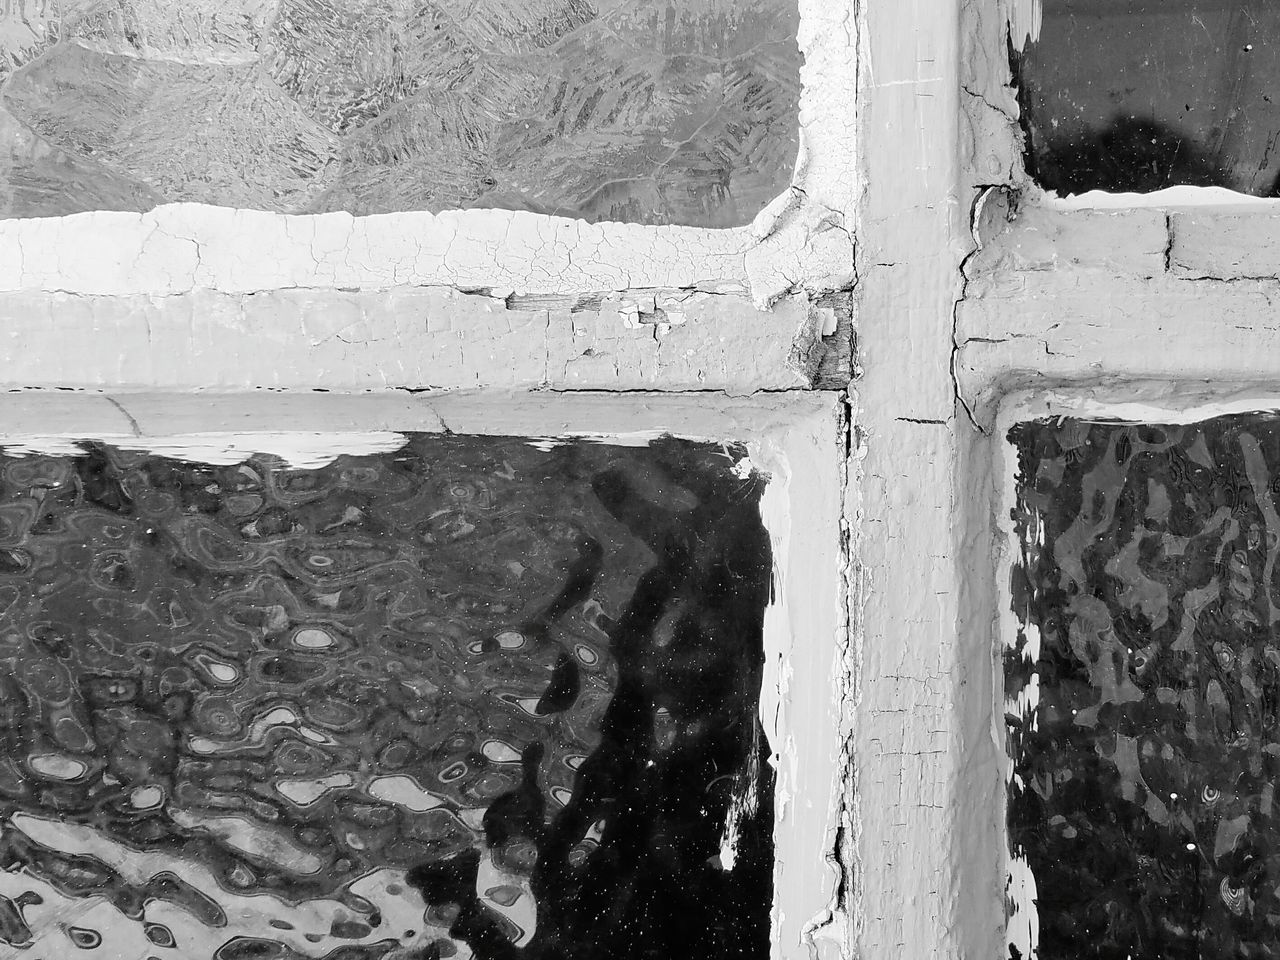 window, day, built structure, architecture, no people, textured, outdoors, close-up, water, building exterior